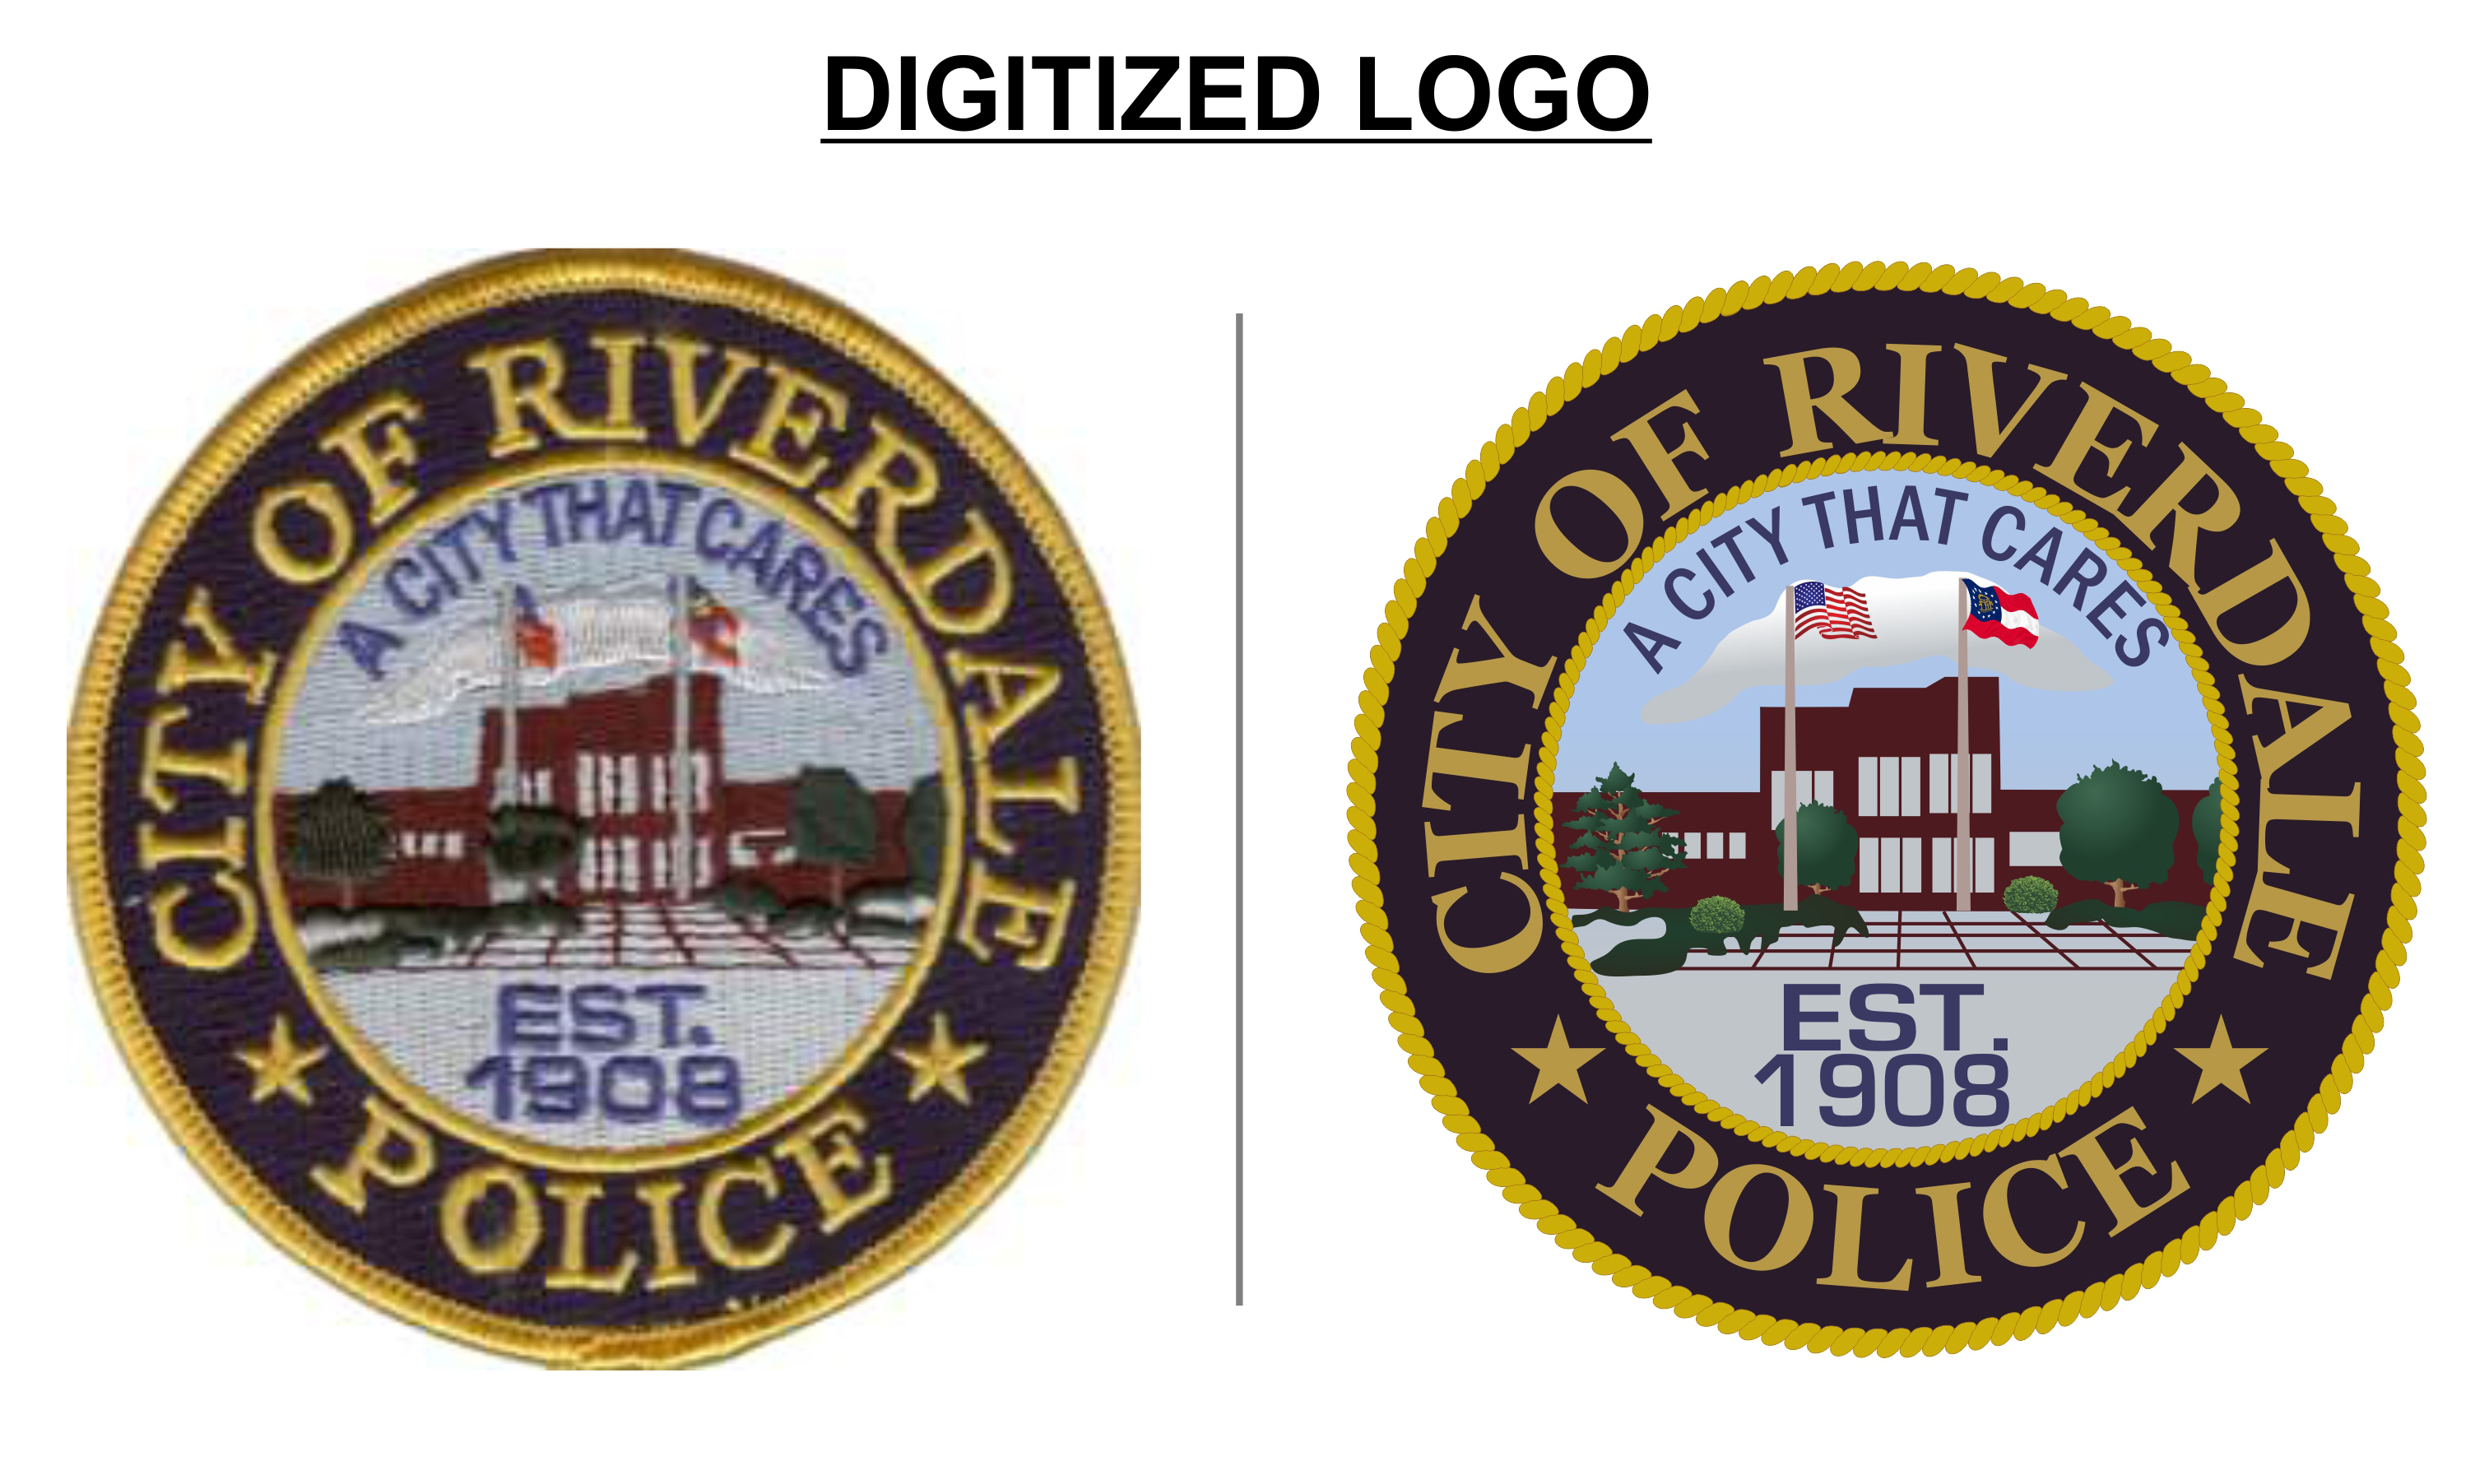 city of riverdale police logo